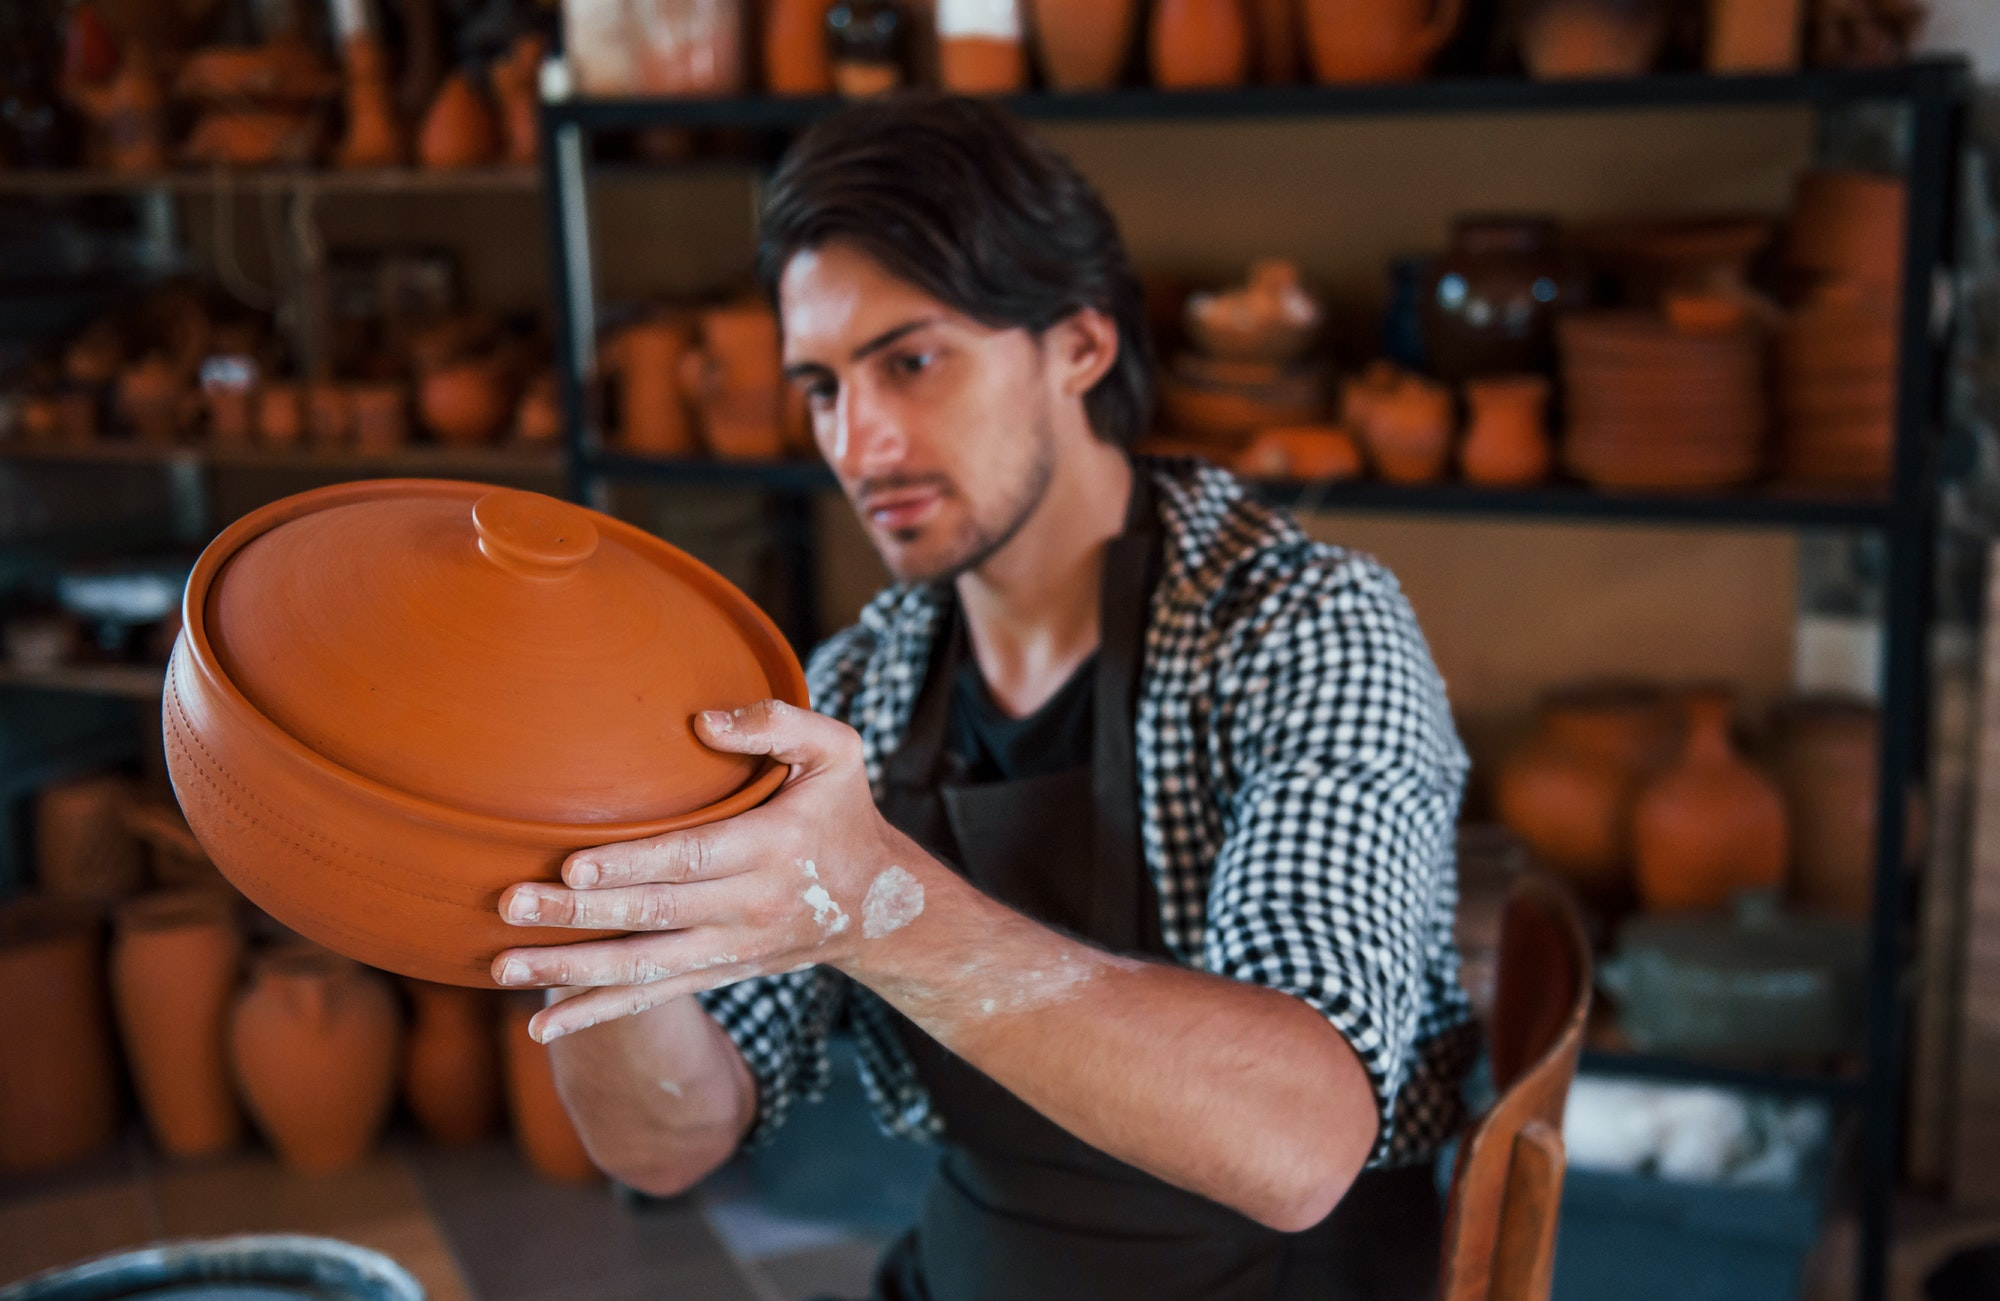 Young ceramist holds fresh handmade product made of clay in hands and looks at results of his work